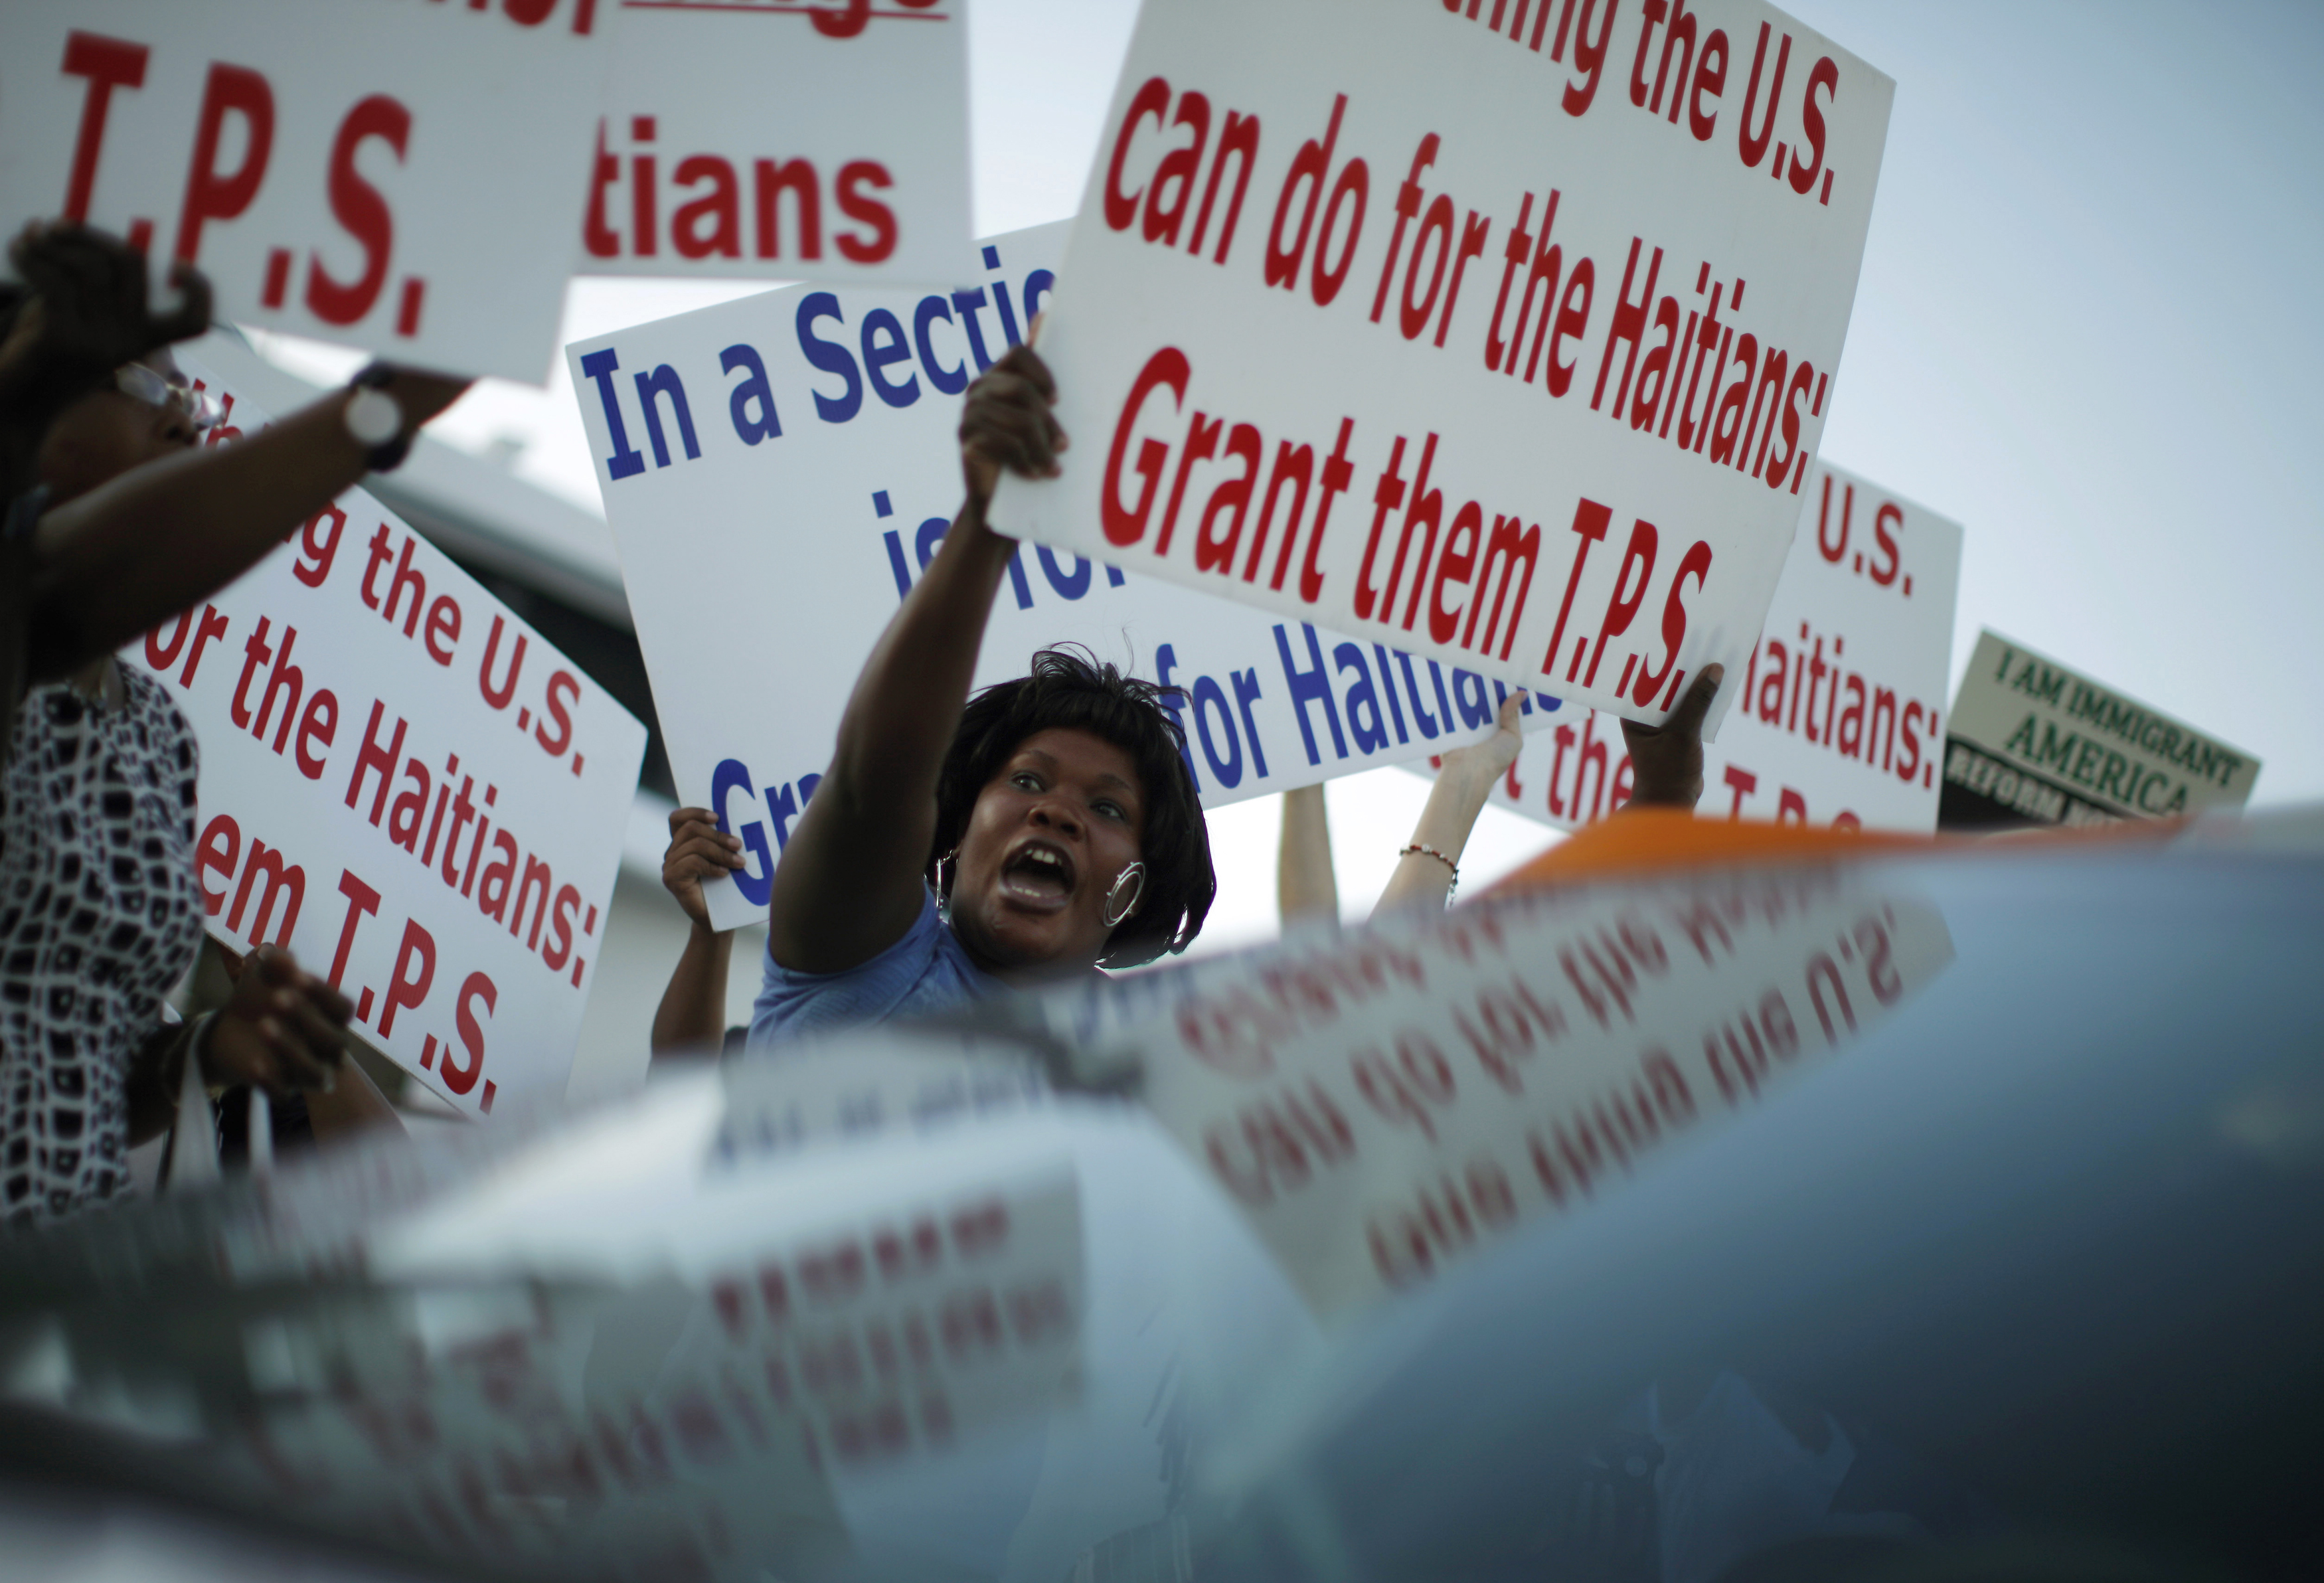 Protesters hold up signs in favor of granting Haitian refugees TPS.